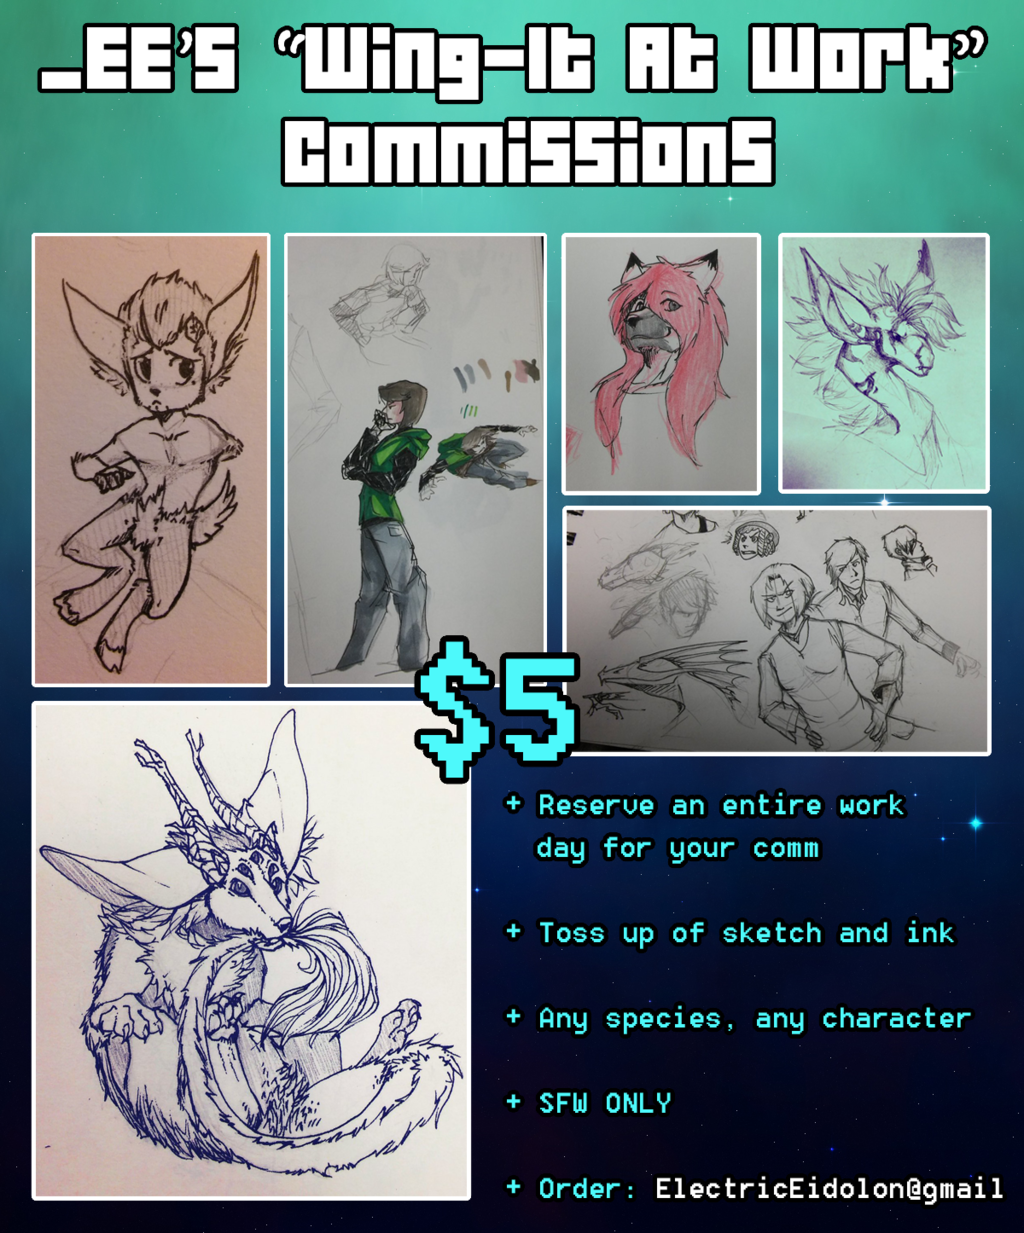 $5 'Wing-It At Work' Commissions [OPEN]